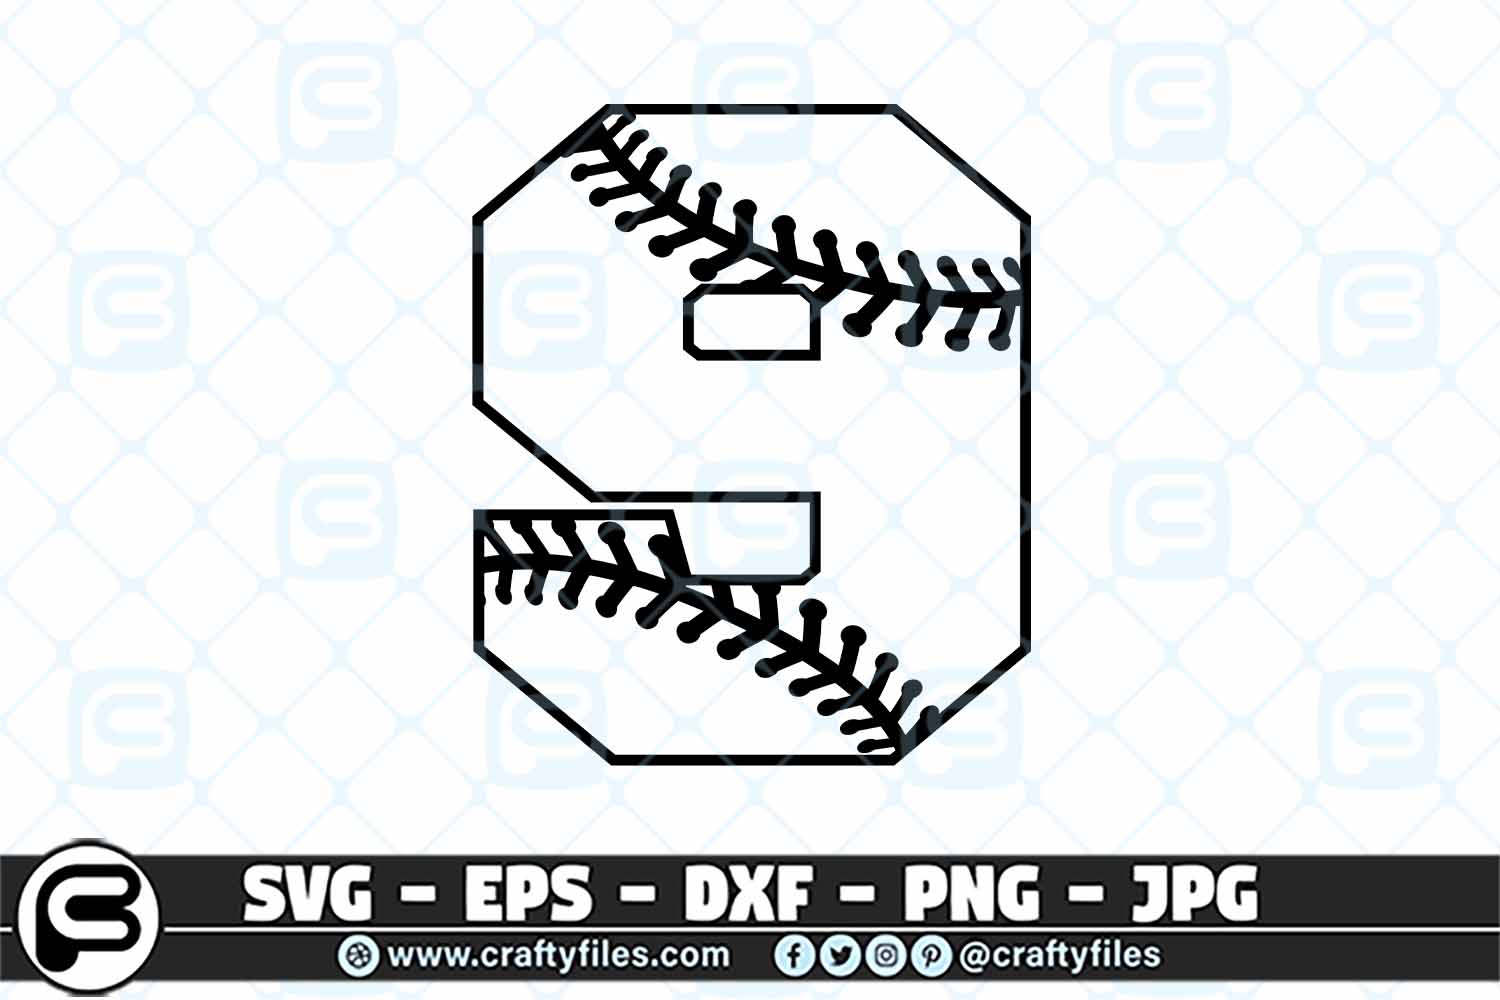 Download Free 9 Base Ball Numbers Graphic By Crafty Files Creative Fabrica for Cricut Explore, Silhouette and other cutting machines.